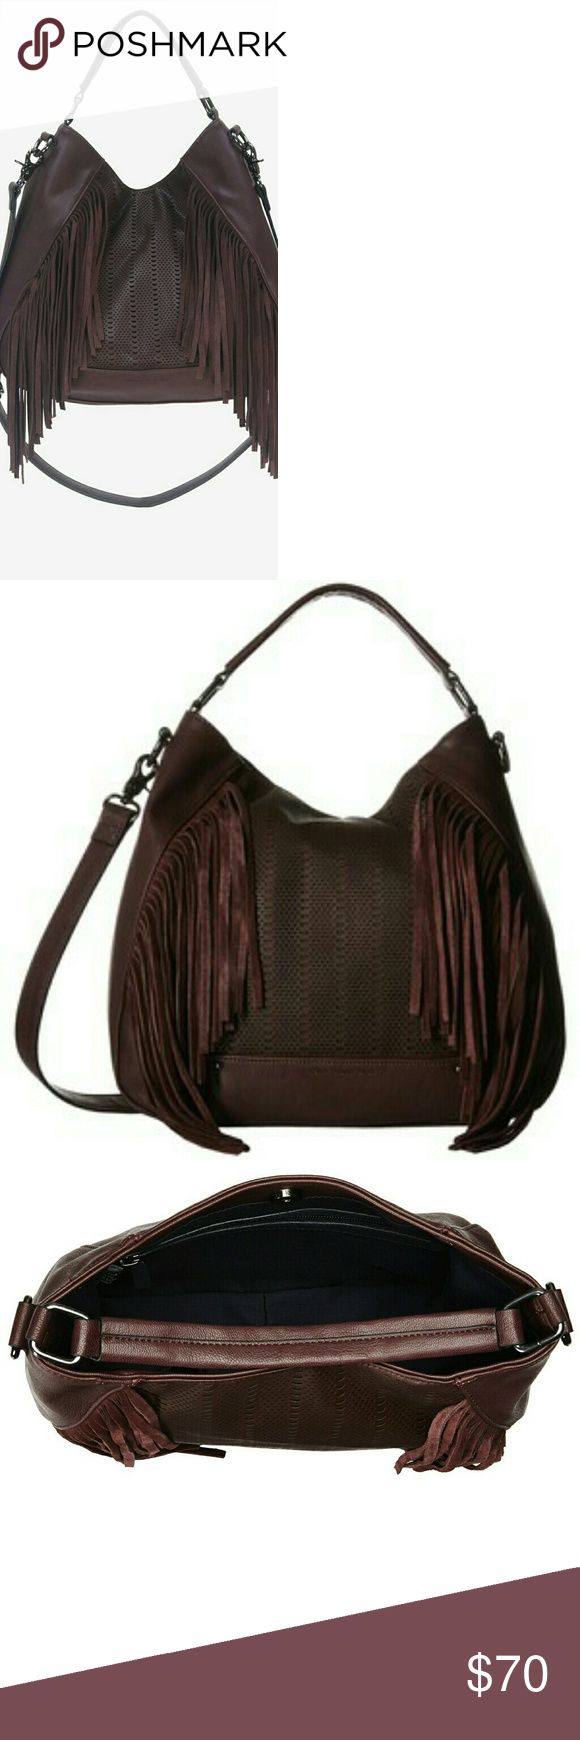 French Connection Rose Hobo French Connection Rose Hobo in 'Biker Berry'. Vegan leather with edgy laser cut design and fringe details. Modern and sleek. Elegant leather look. Detachable crossbody strap included. French Connection Bags Hobos